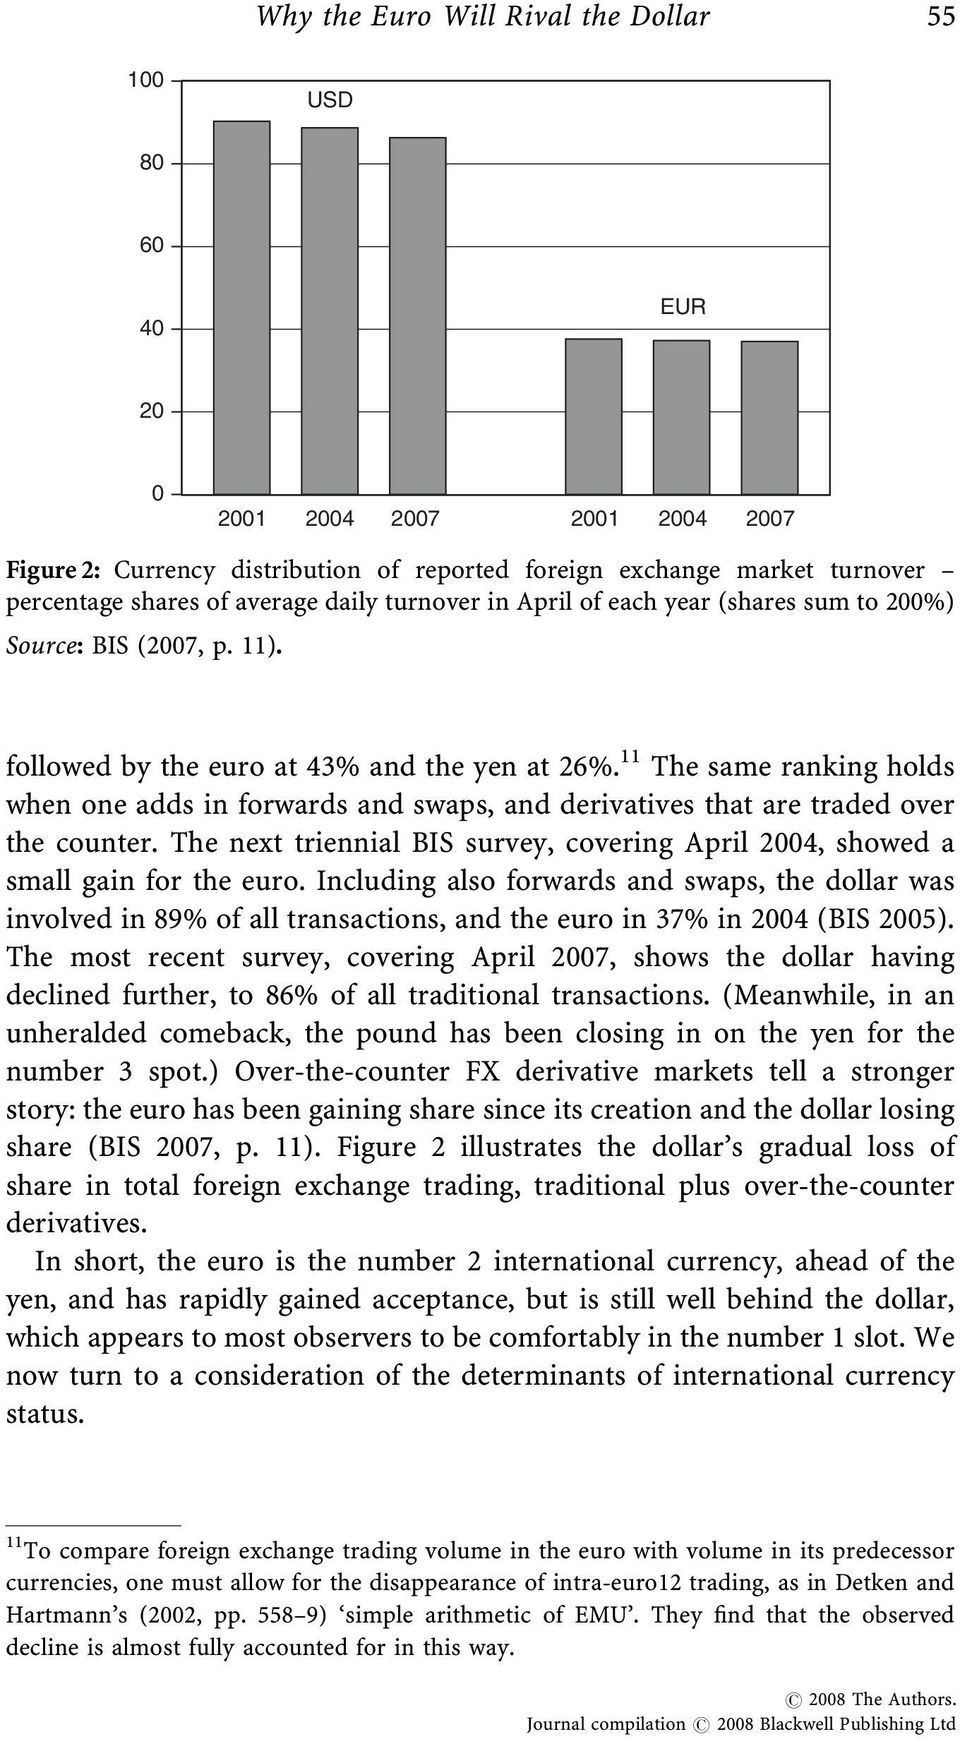 11 The same ranking holds when one adds in forwards and swaps, and derivatives that are traded over the counter. The next triennial BIS survey, covering April 2004, showed a small gain for the euro.